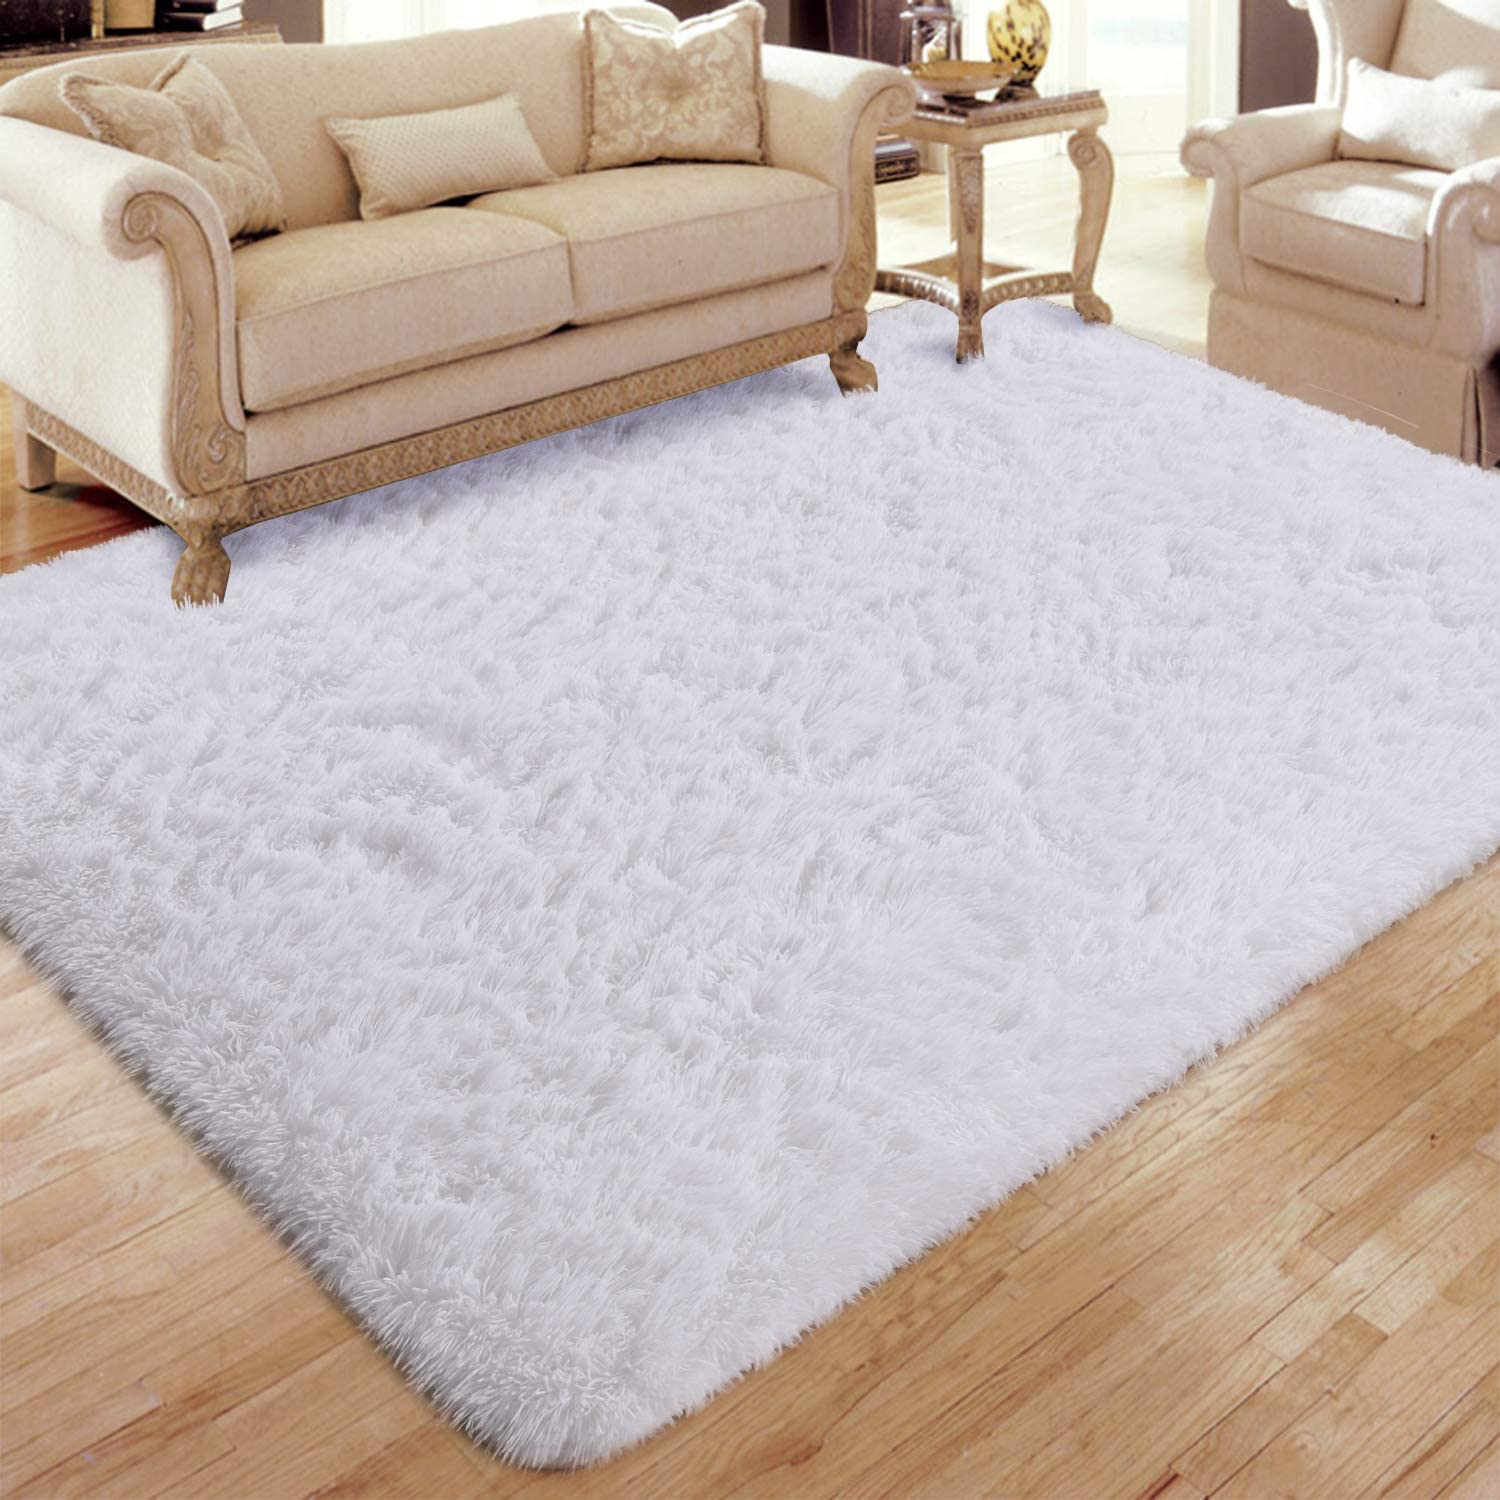 Flagover Soft Fluffy Modern Living Room Area Rugs Shaggy Plush Non-Slip Bedroom Carpets Suitable for Children Room, Baby Room, College Dorm and Nursery Home Decor Floor Rugs 5x8 Feet White